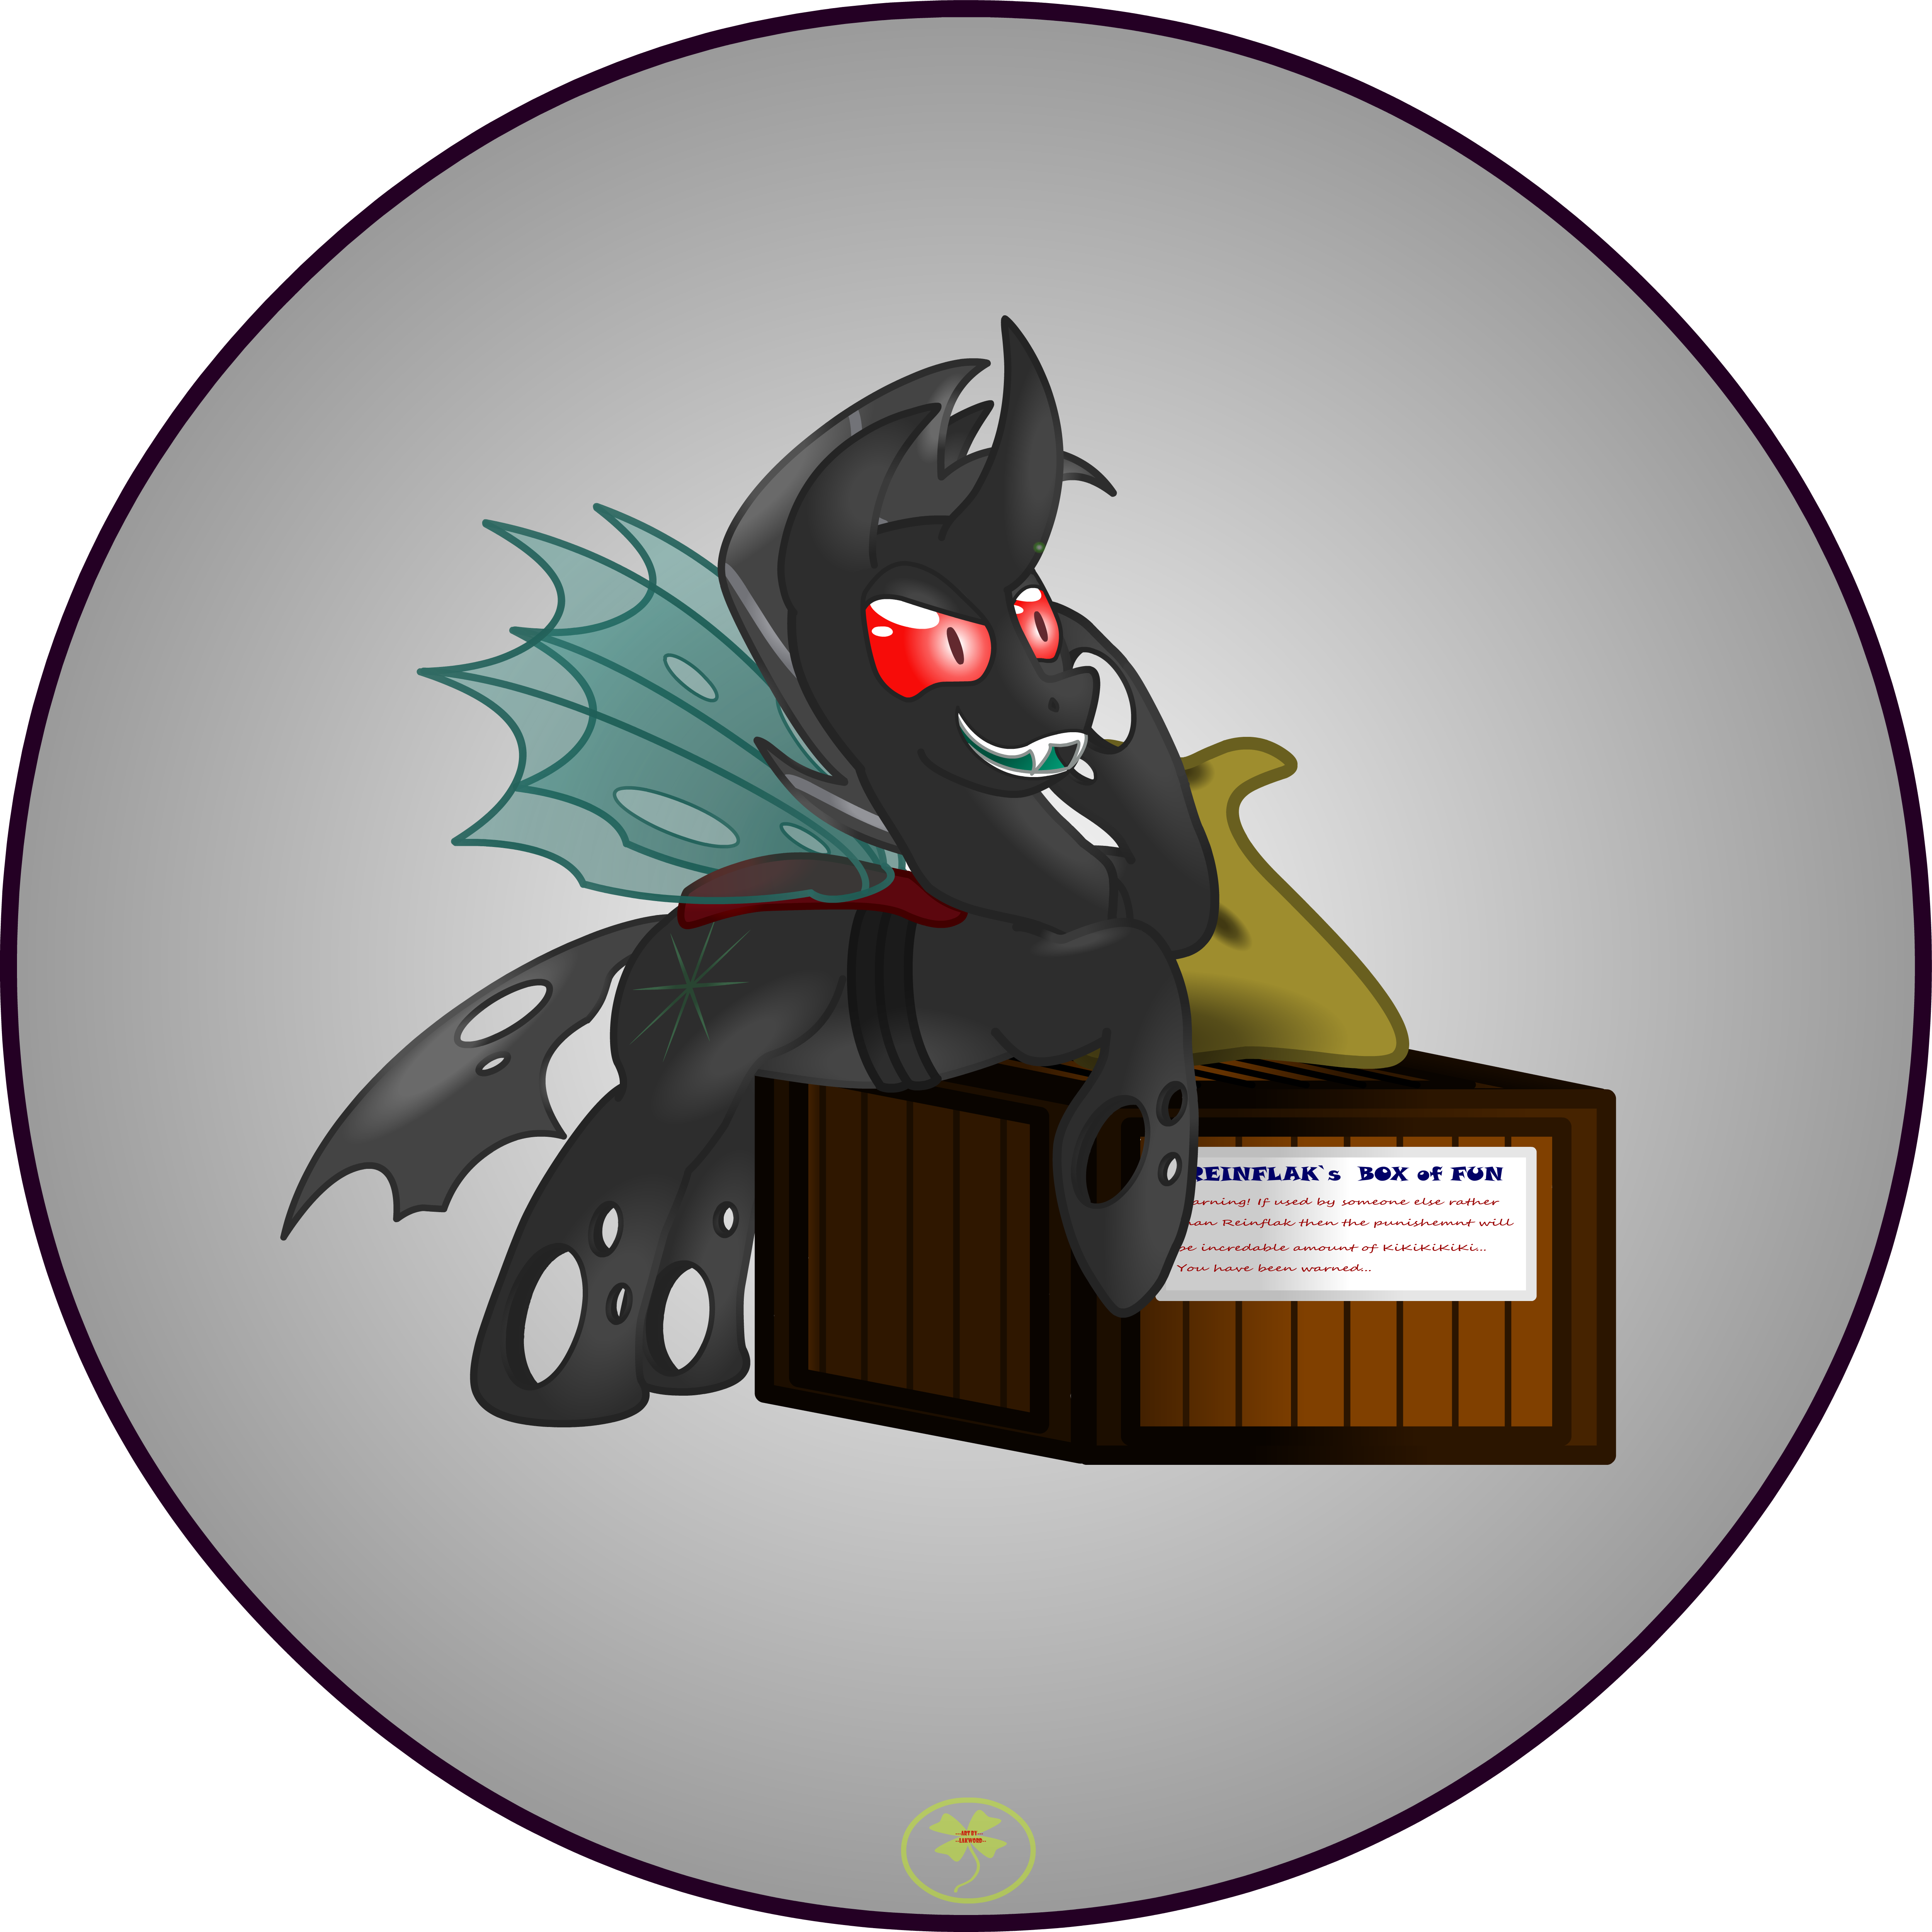 Reinflak and his Box 1 by Lakword